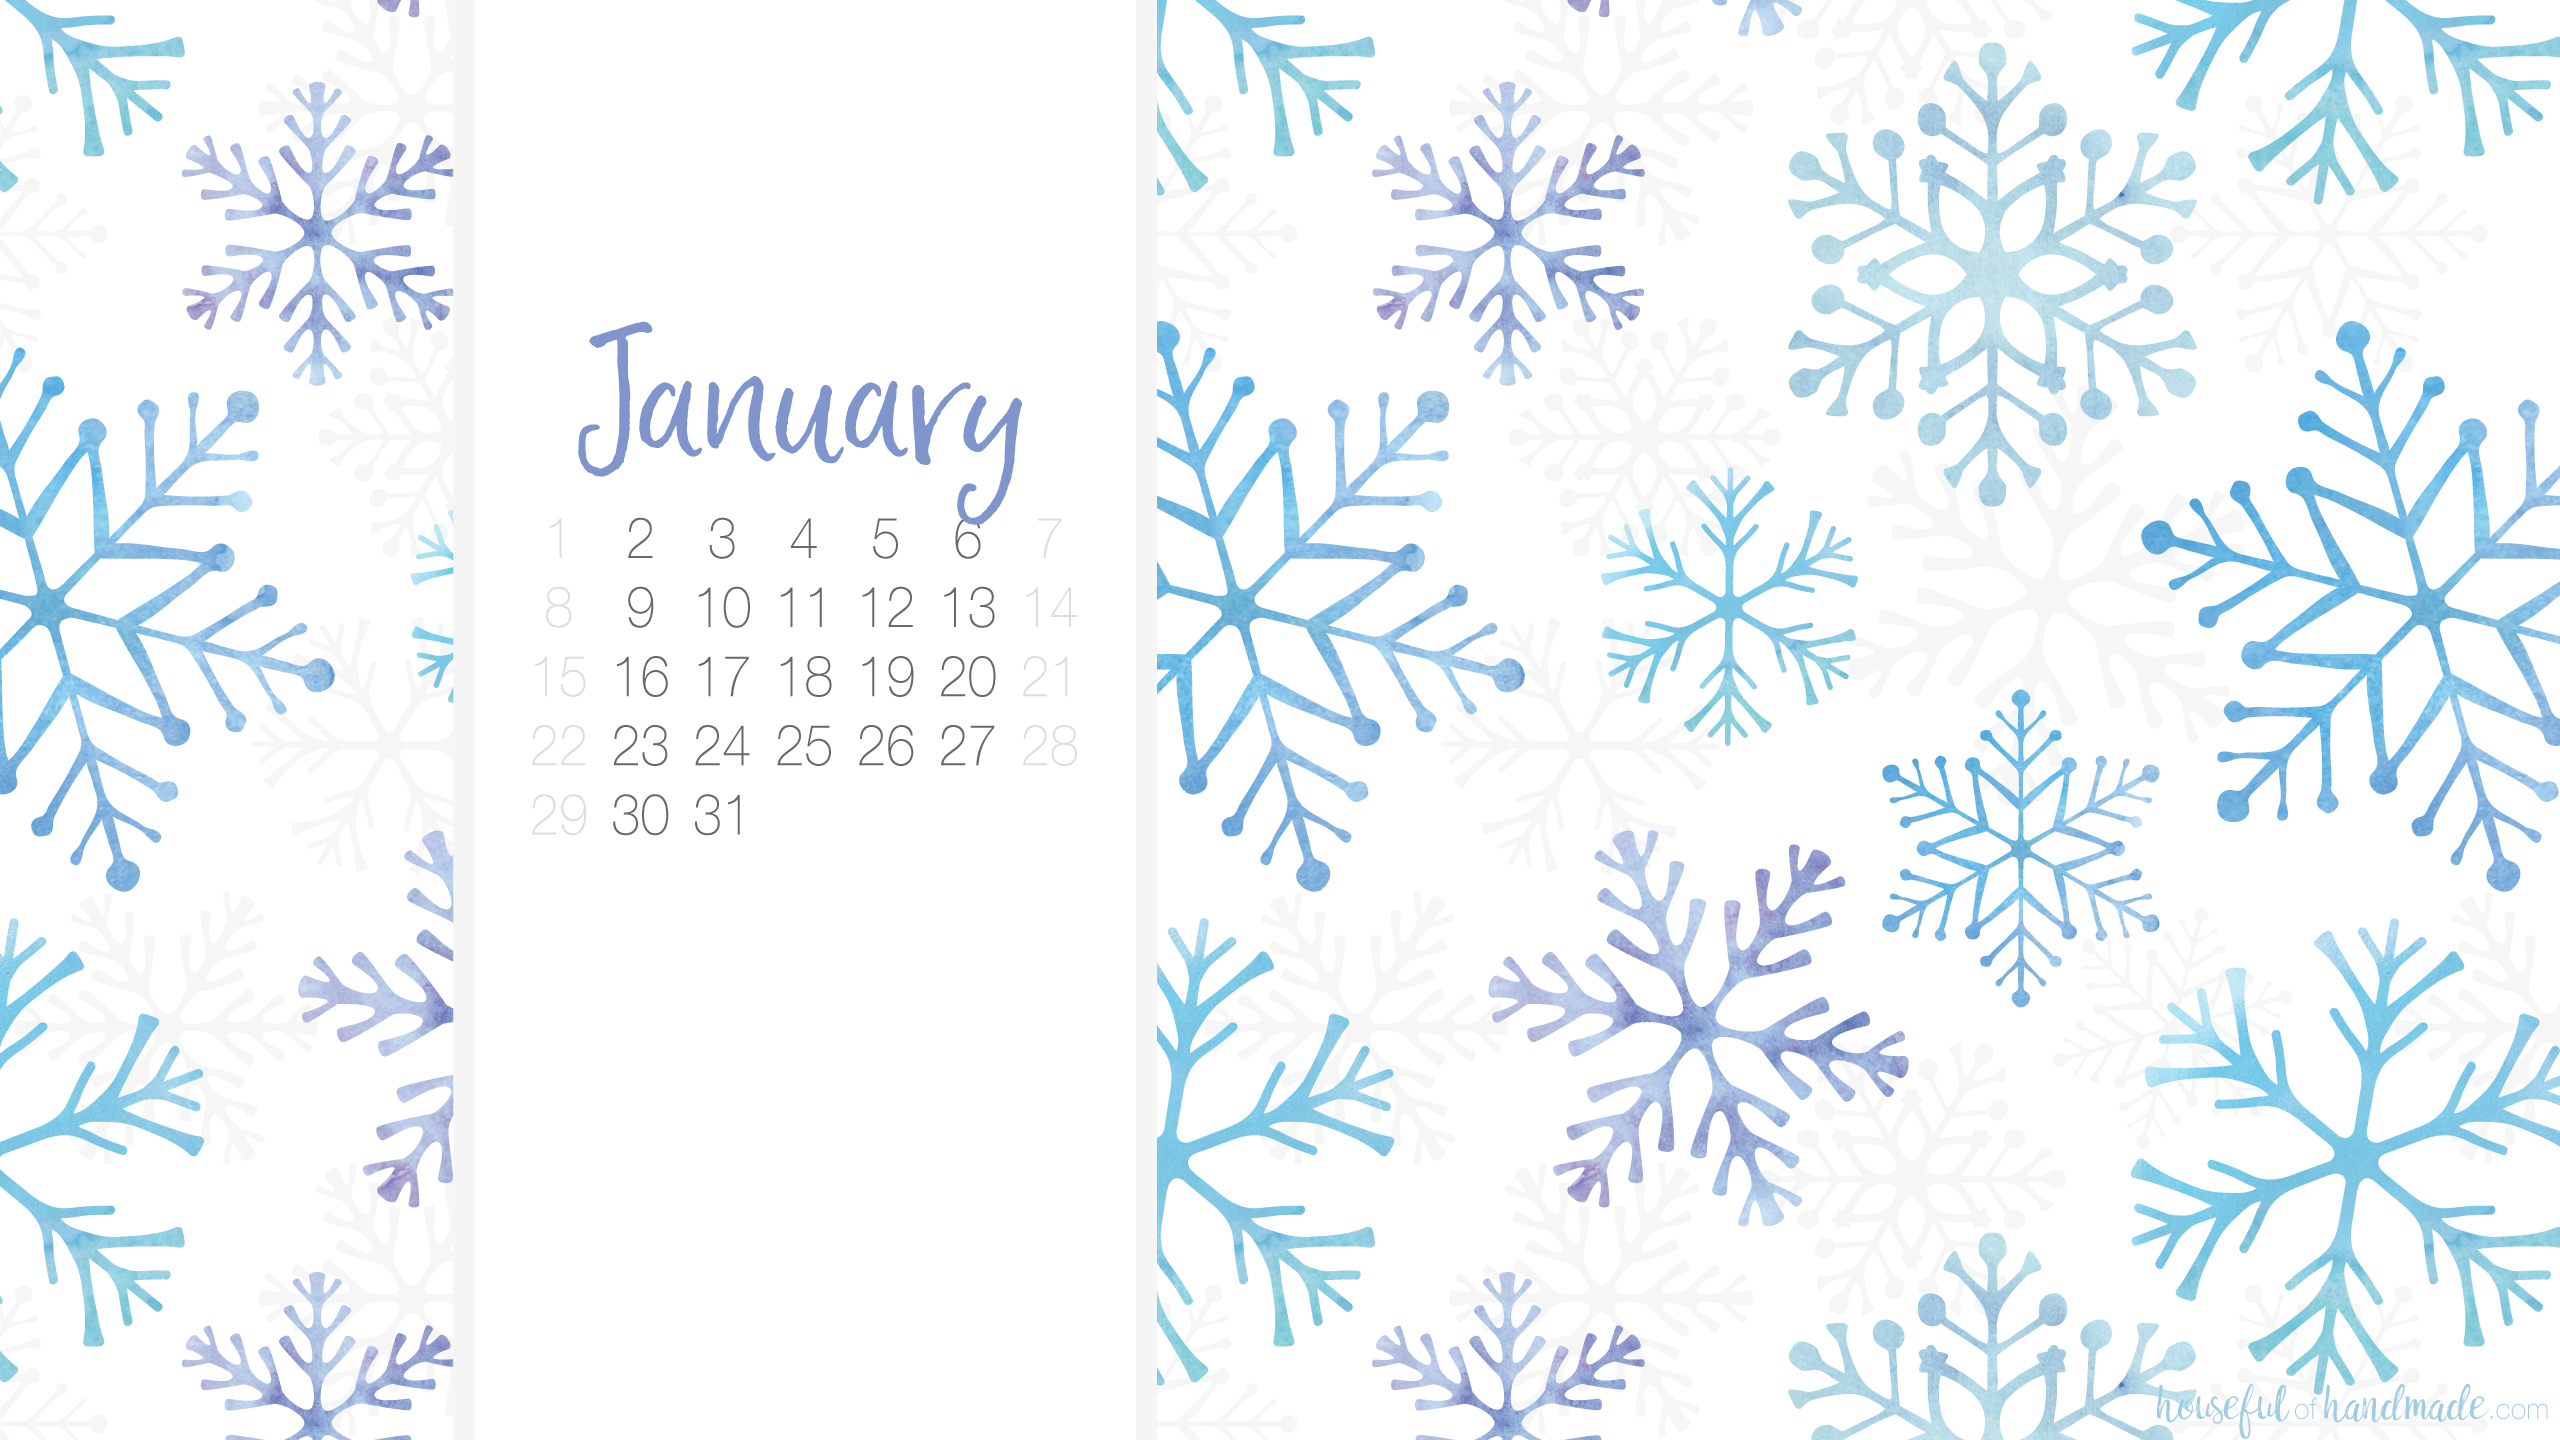 January Backgrounds 101 images in Collection Page 2 2560x1440